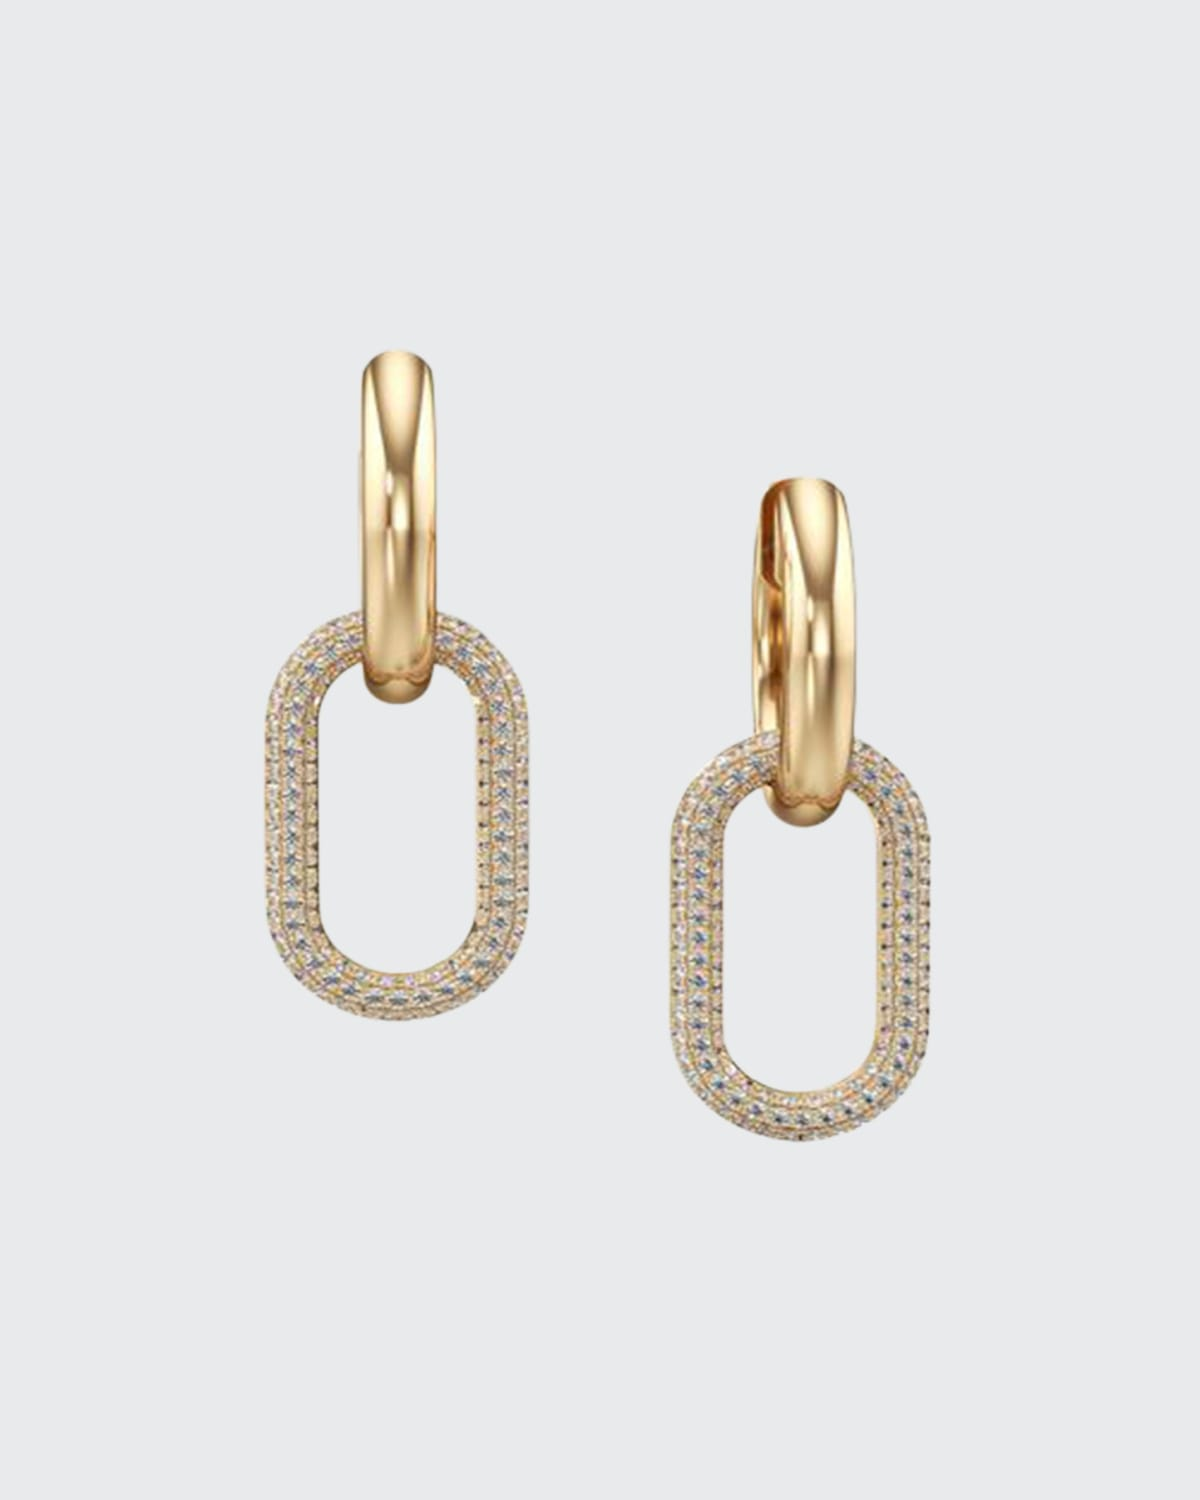 Gold and Diamond Pave Link Earrings